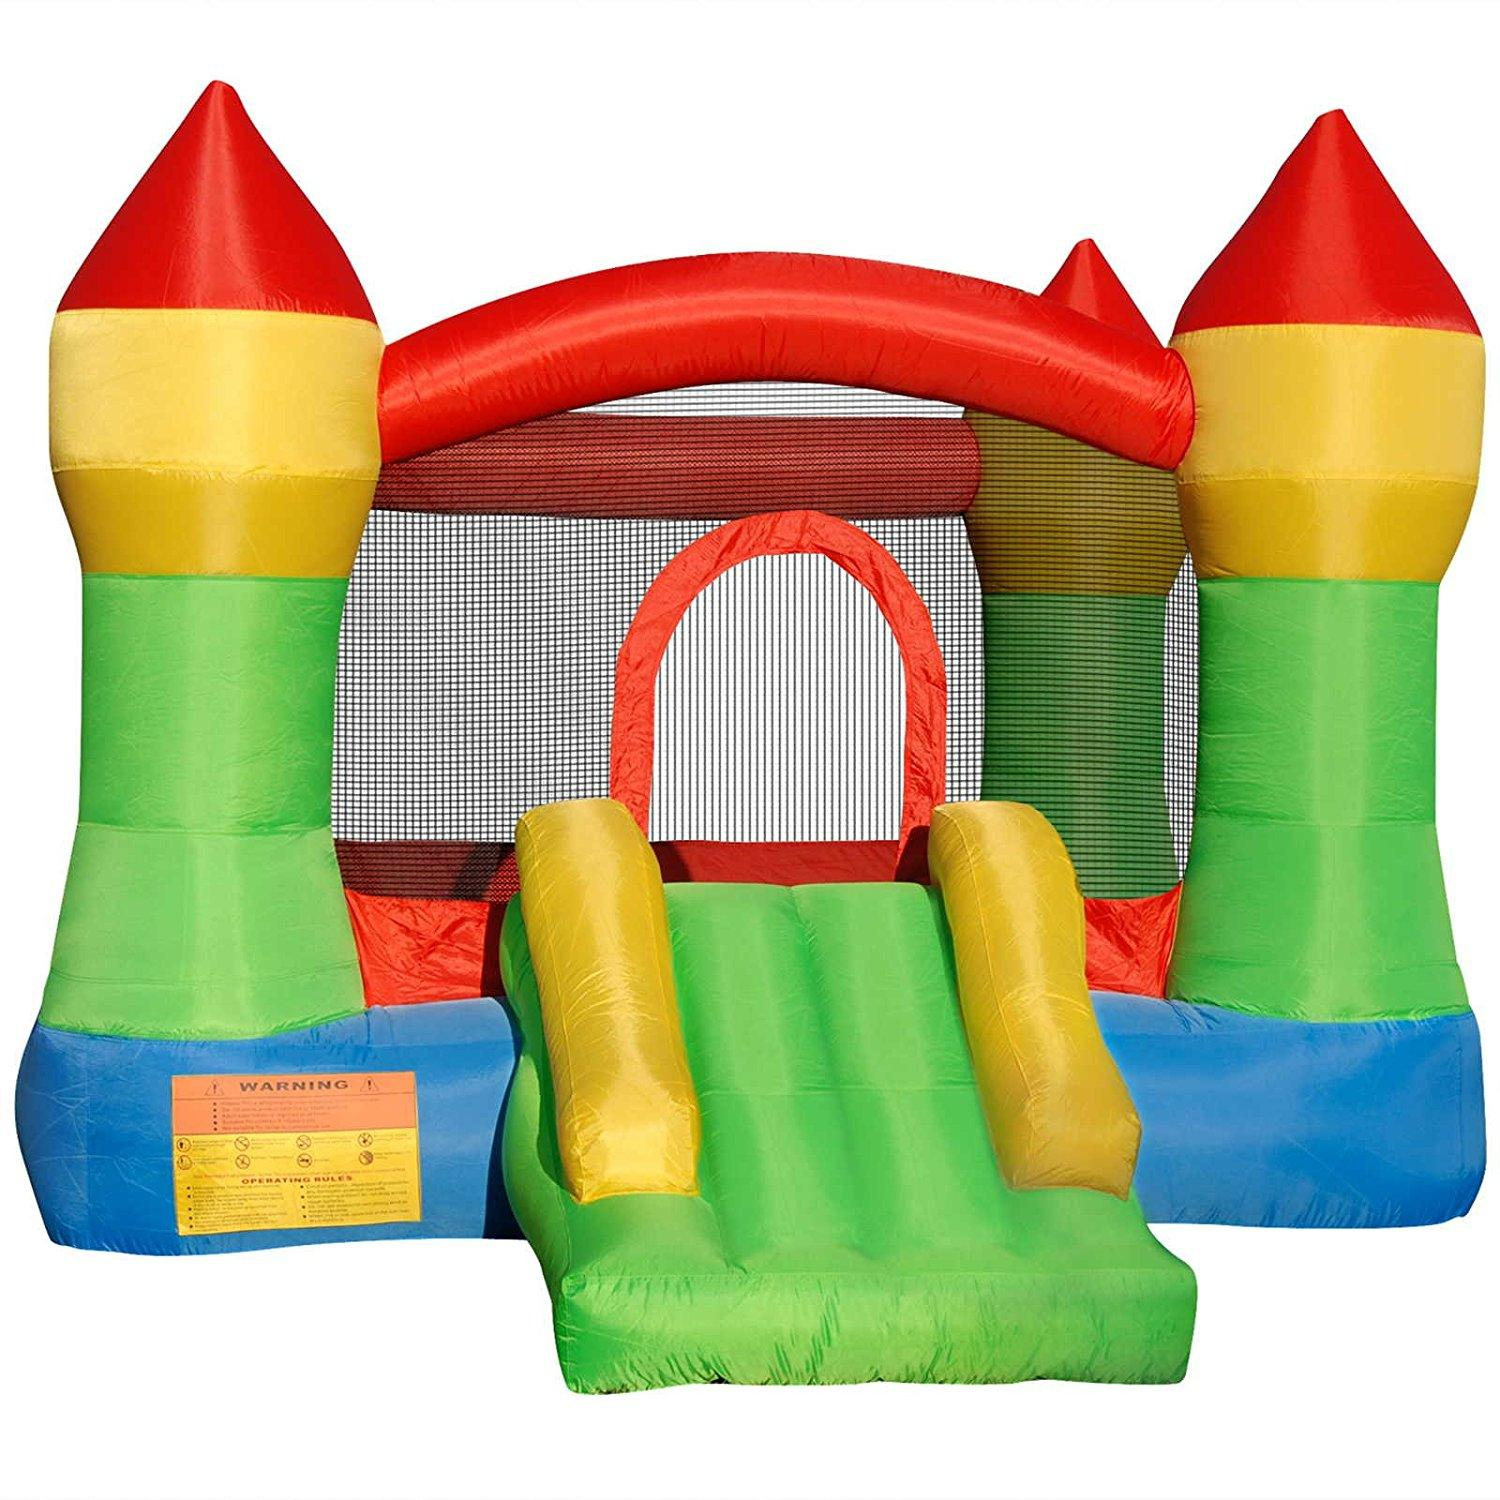 The Cloud 9 Bounce House is a simple bounce house perfect for toddlers